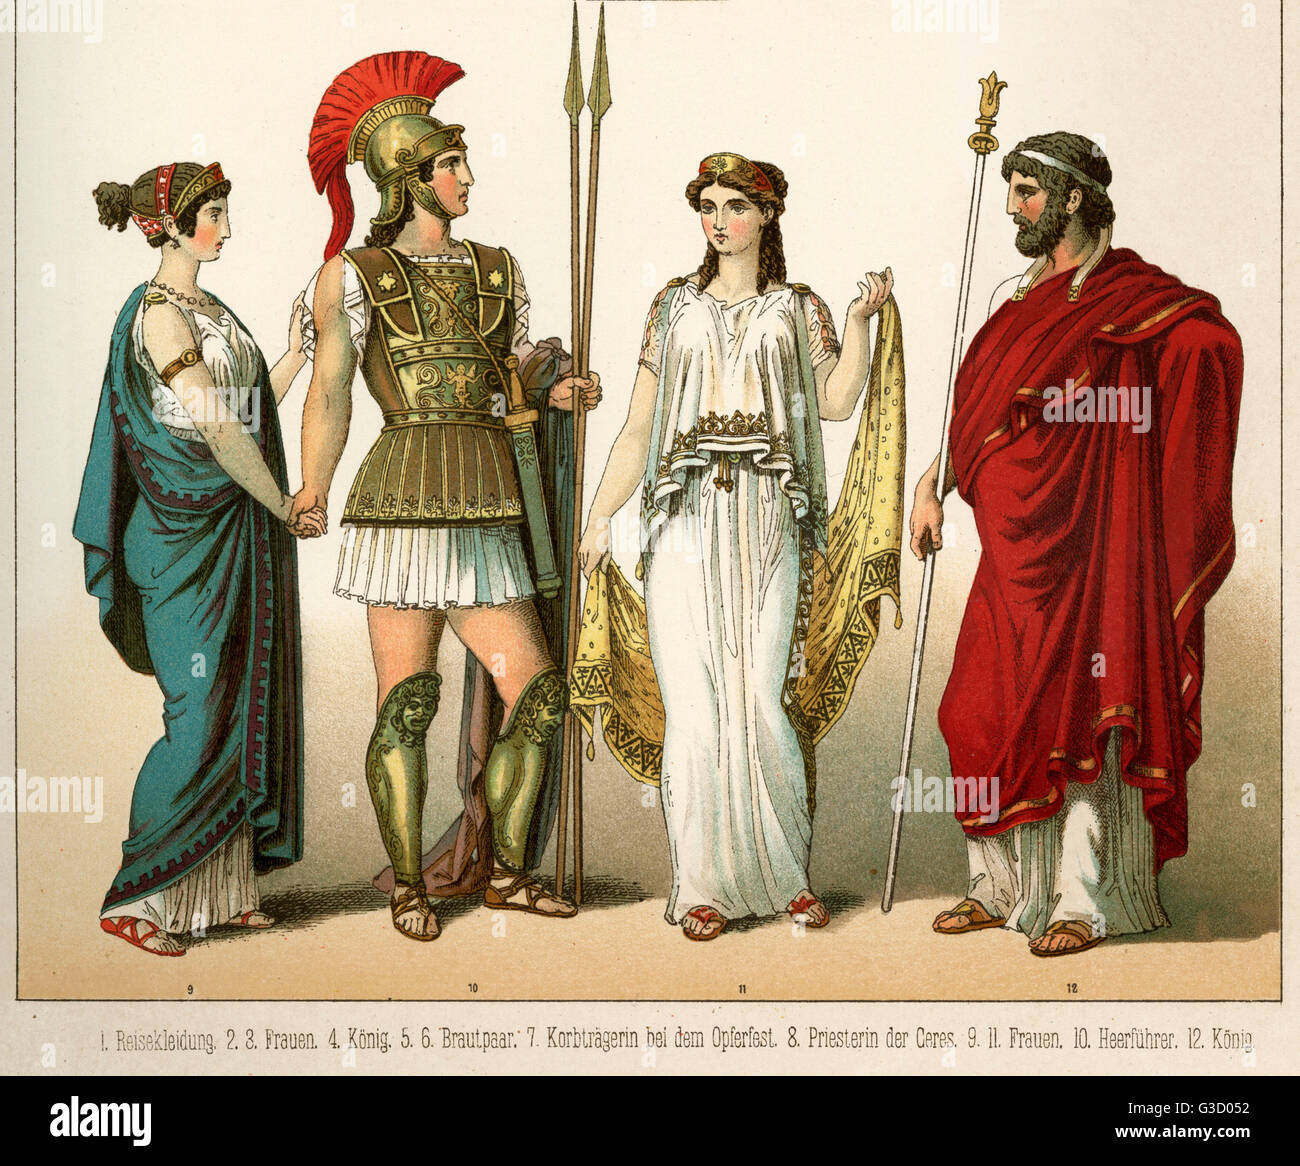 Ancient Greece Costume Wearing Chiton Warrior With Armour And Stock Photo Alamy